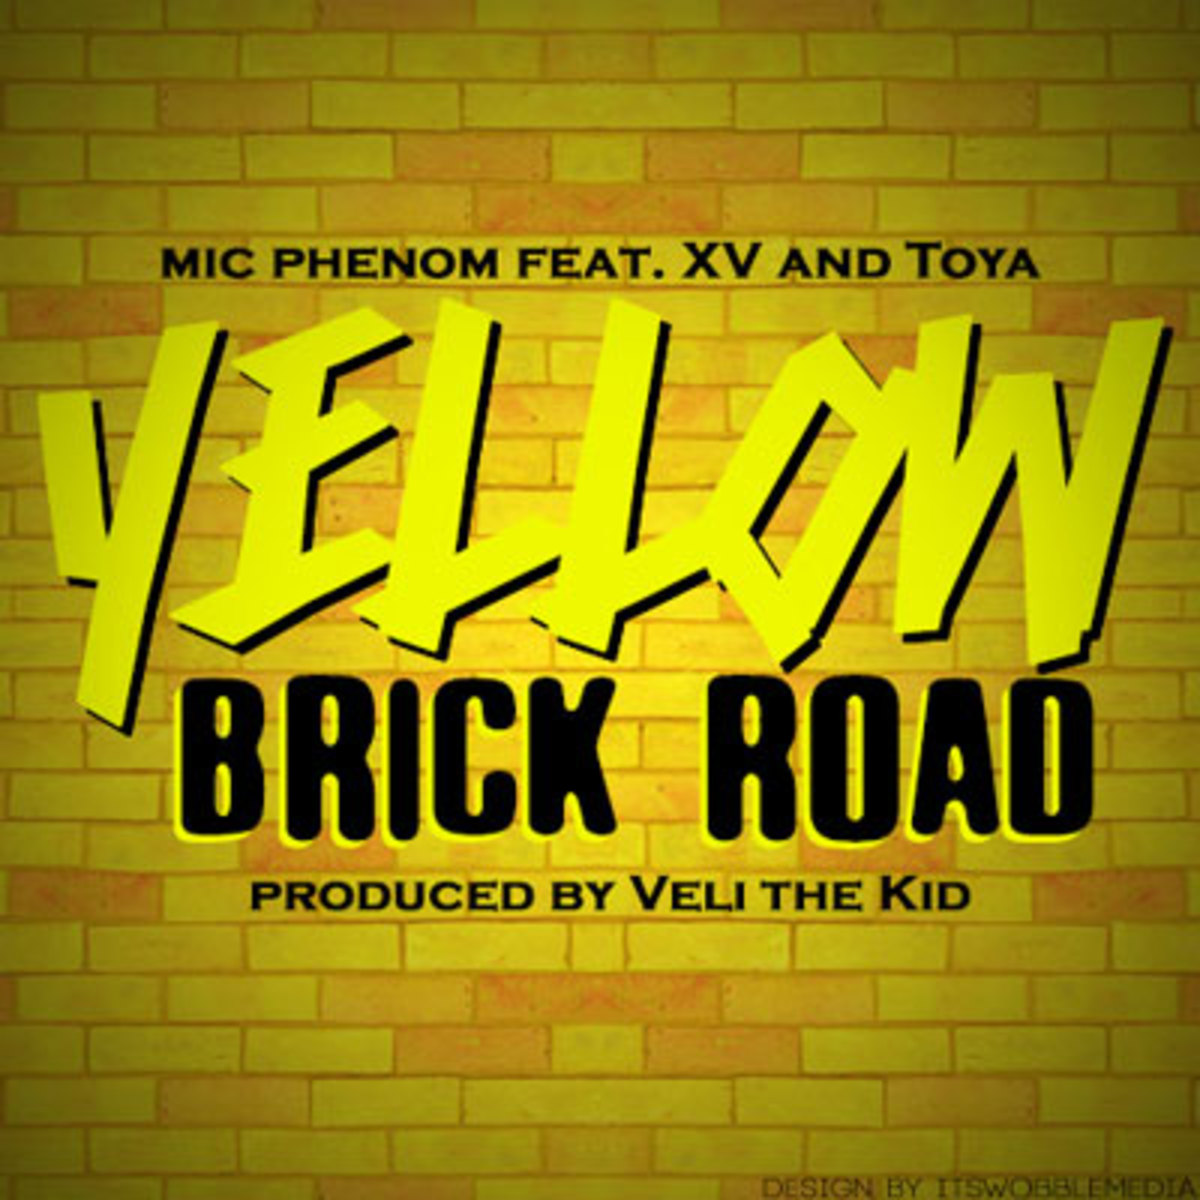 micphenom-yellowbrick.jpg